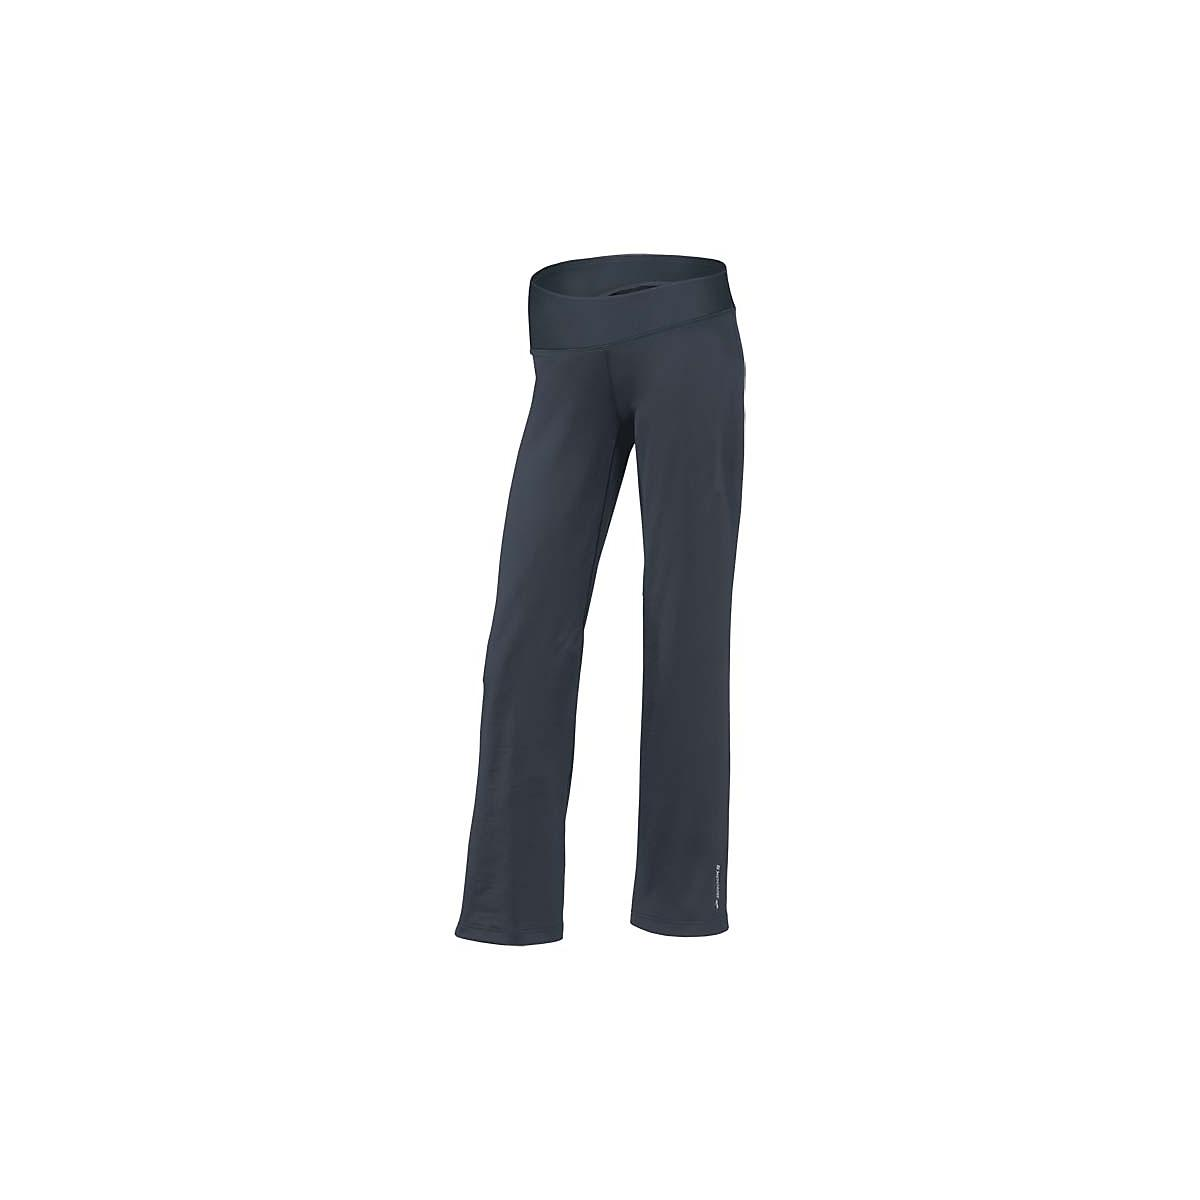 Womens Brooks Glycerin Iii Warm Up Pants At Road Runner Sports